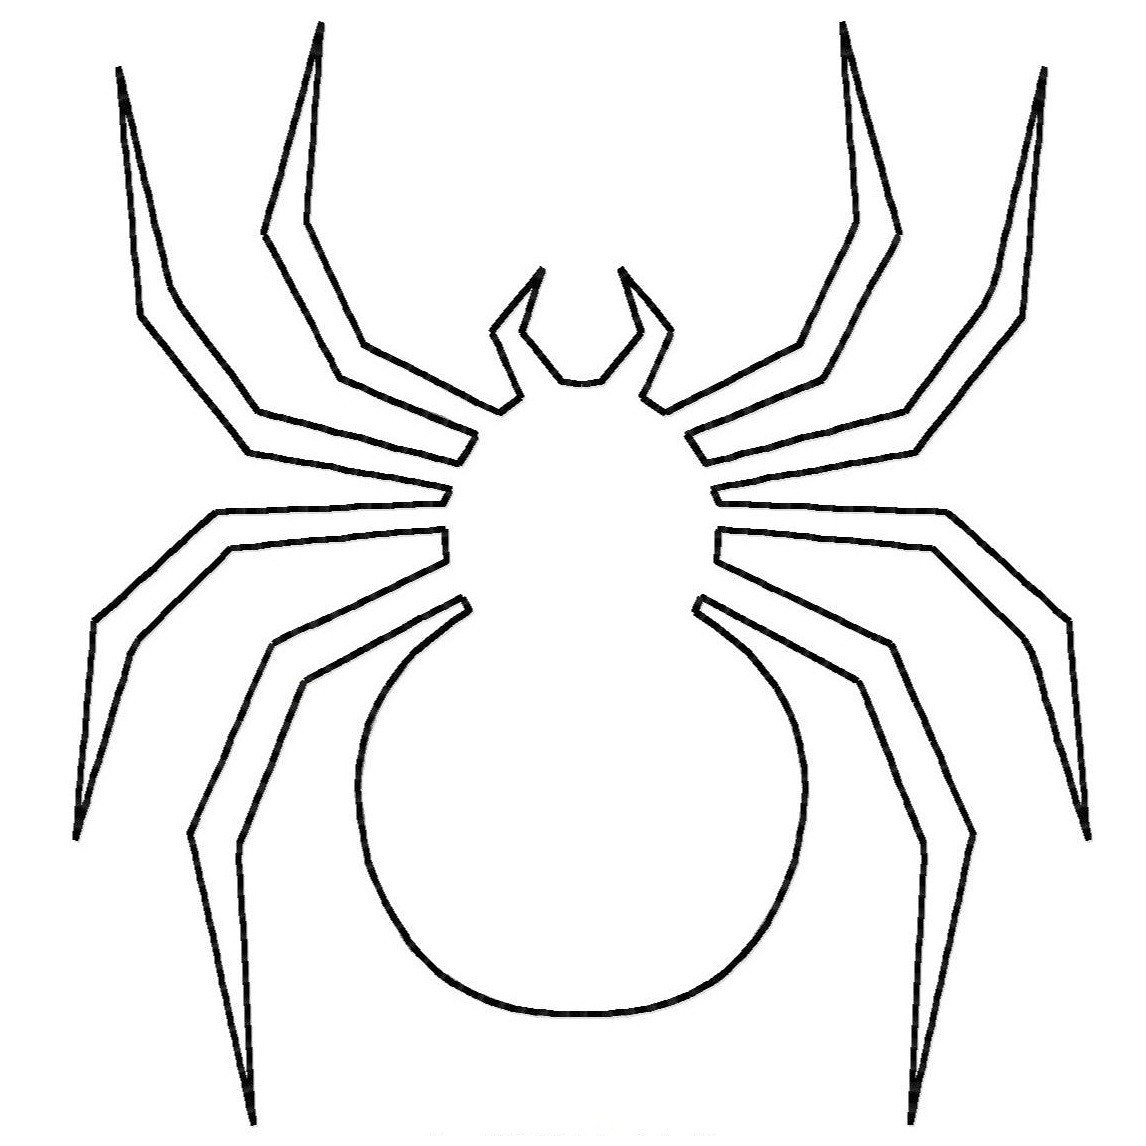 Spider coloring pages to download